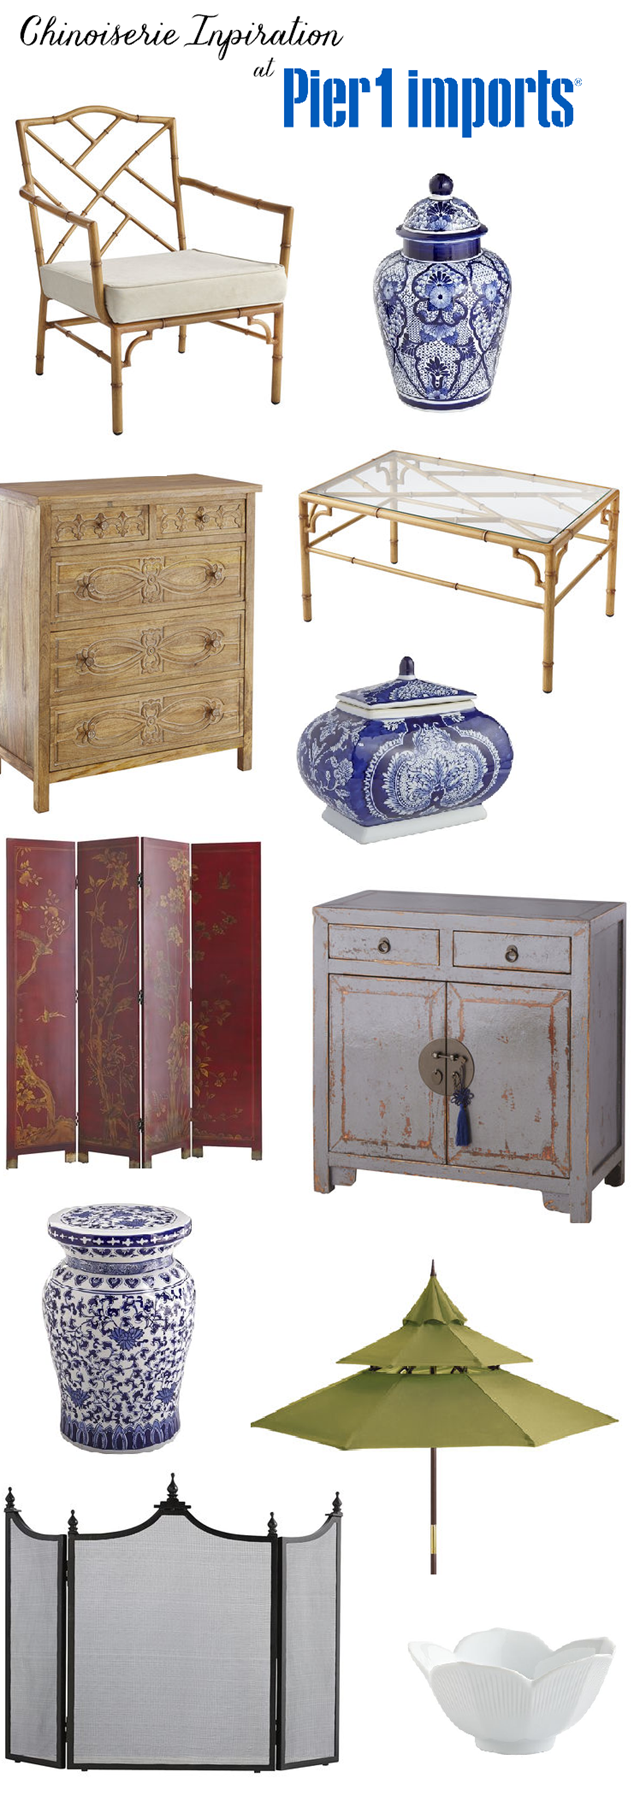 Chinoiserie style at Pier 1 Imports